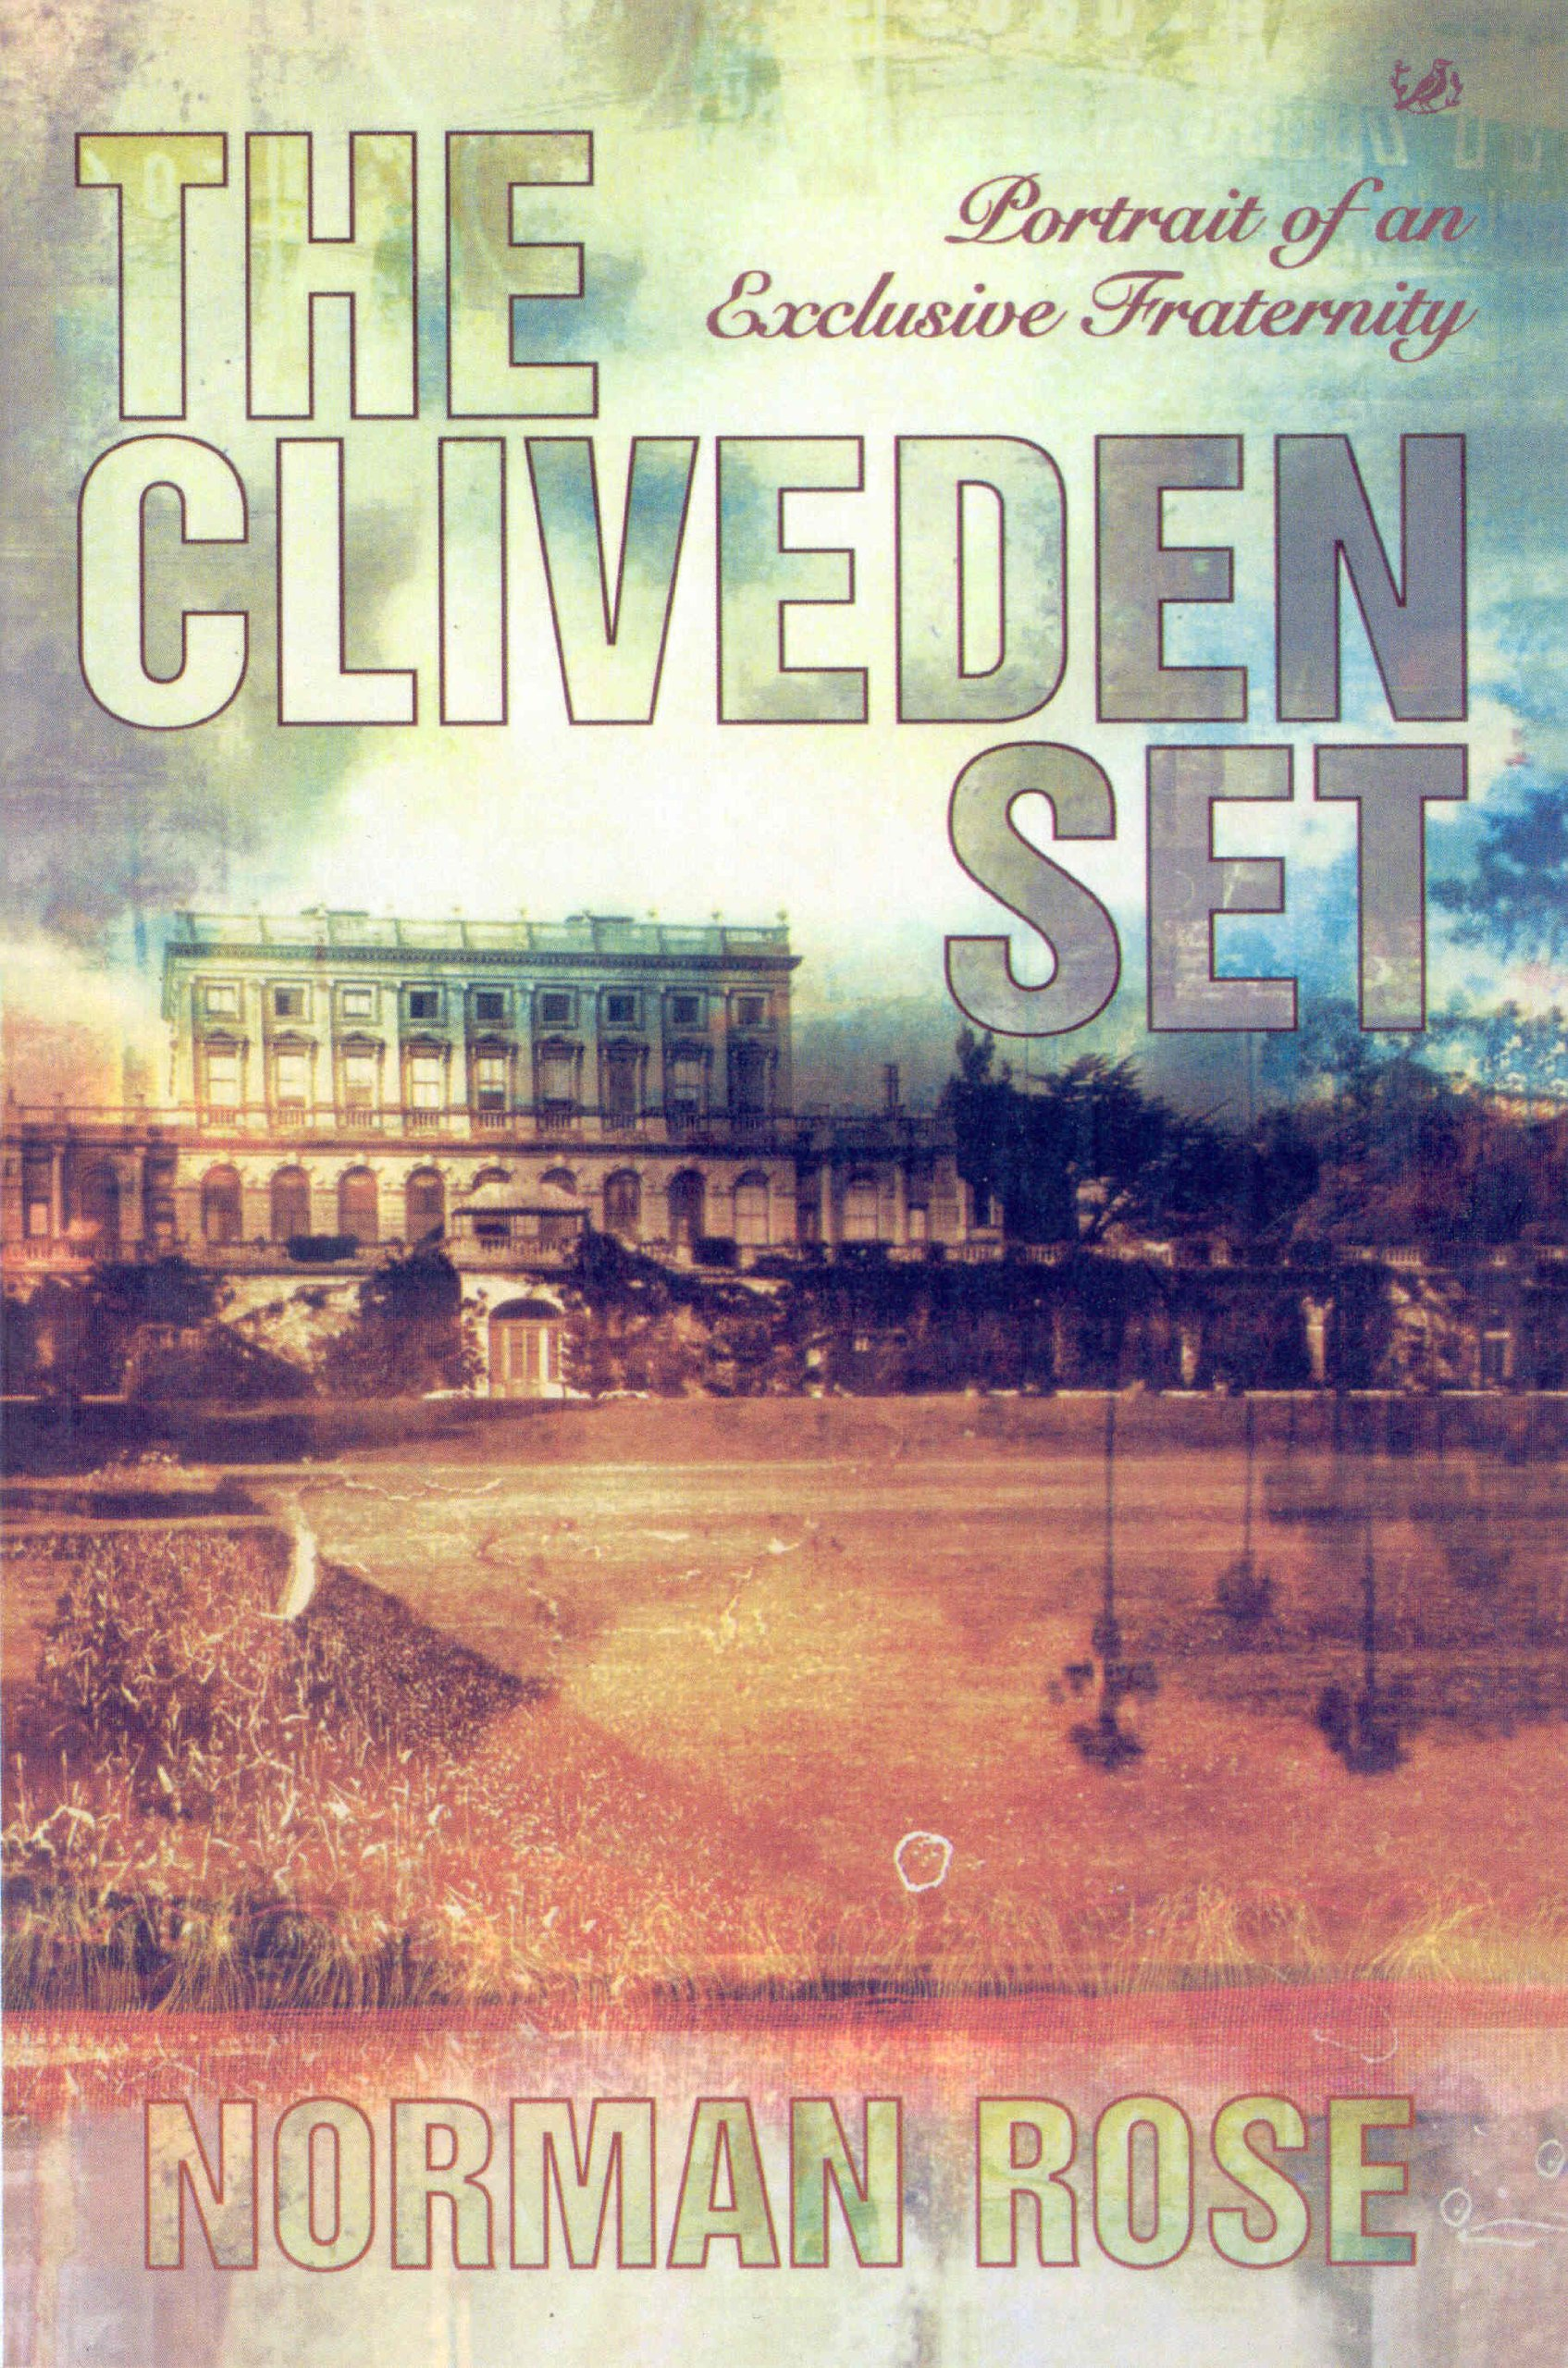 The Cliveden Set: Portrait of an Exclusive Fraternity